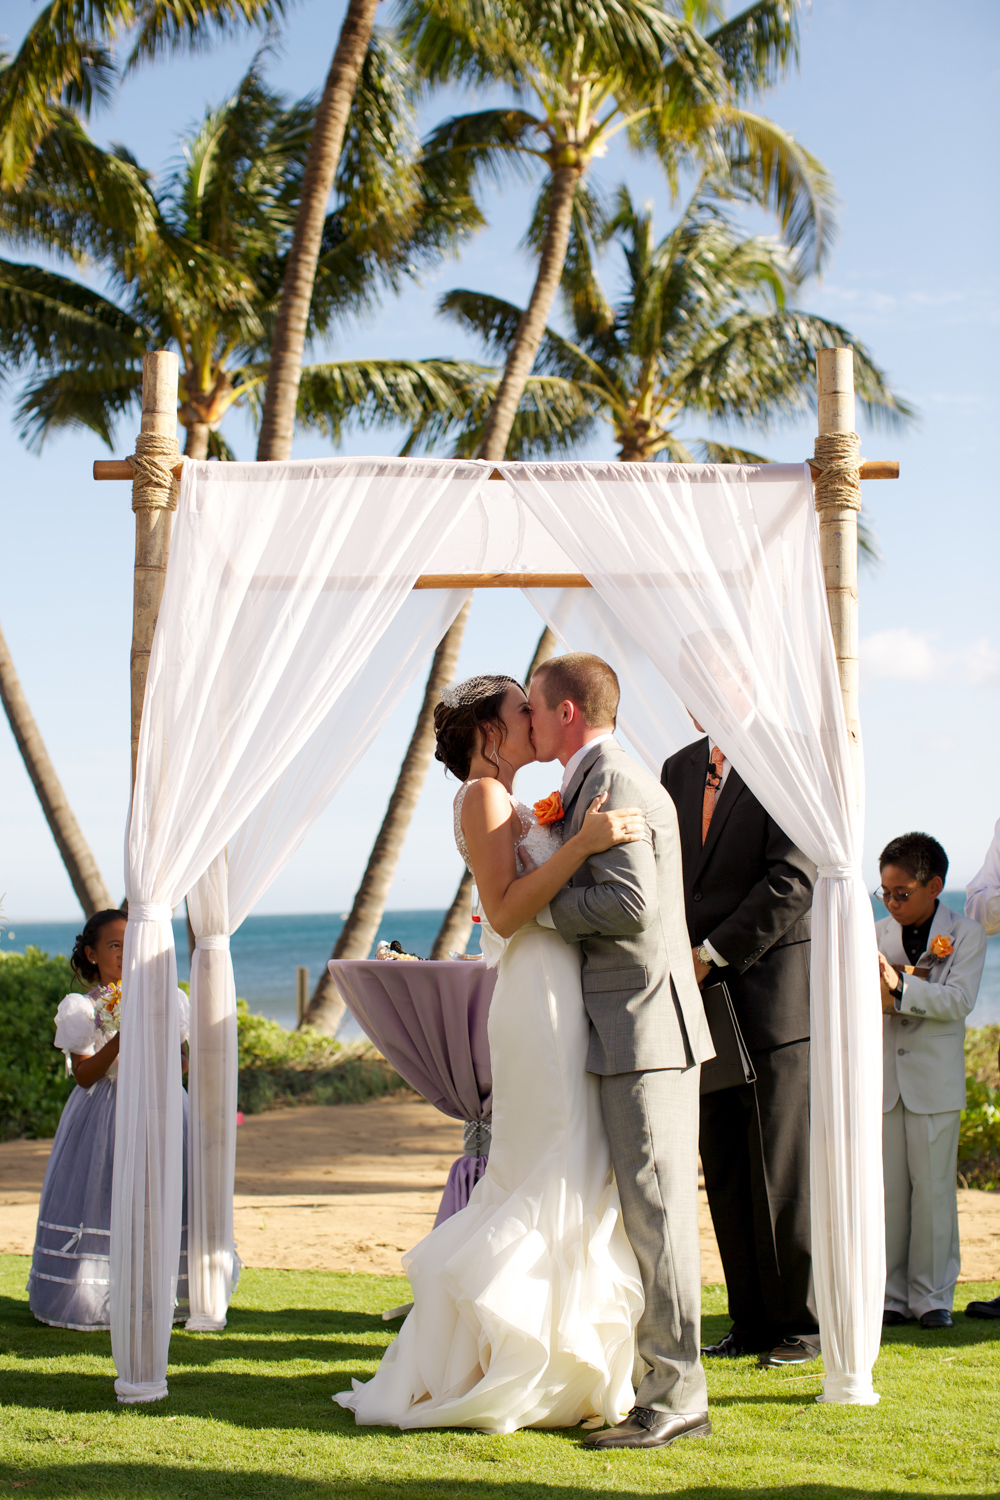 bliss-maui-wedding-sugar-beach-events-anna-kim-photography-katelyn-eric-15.jpg